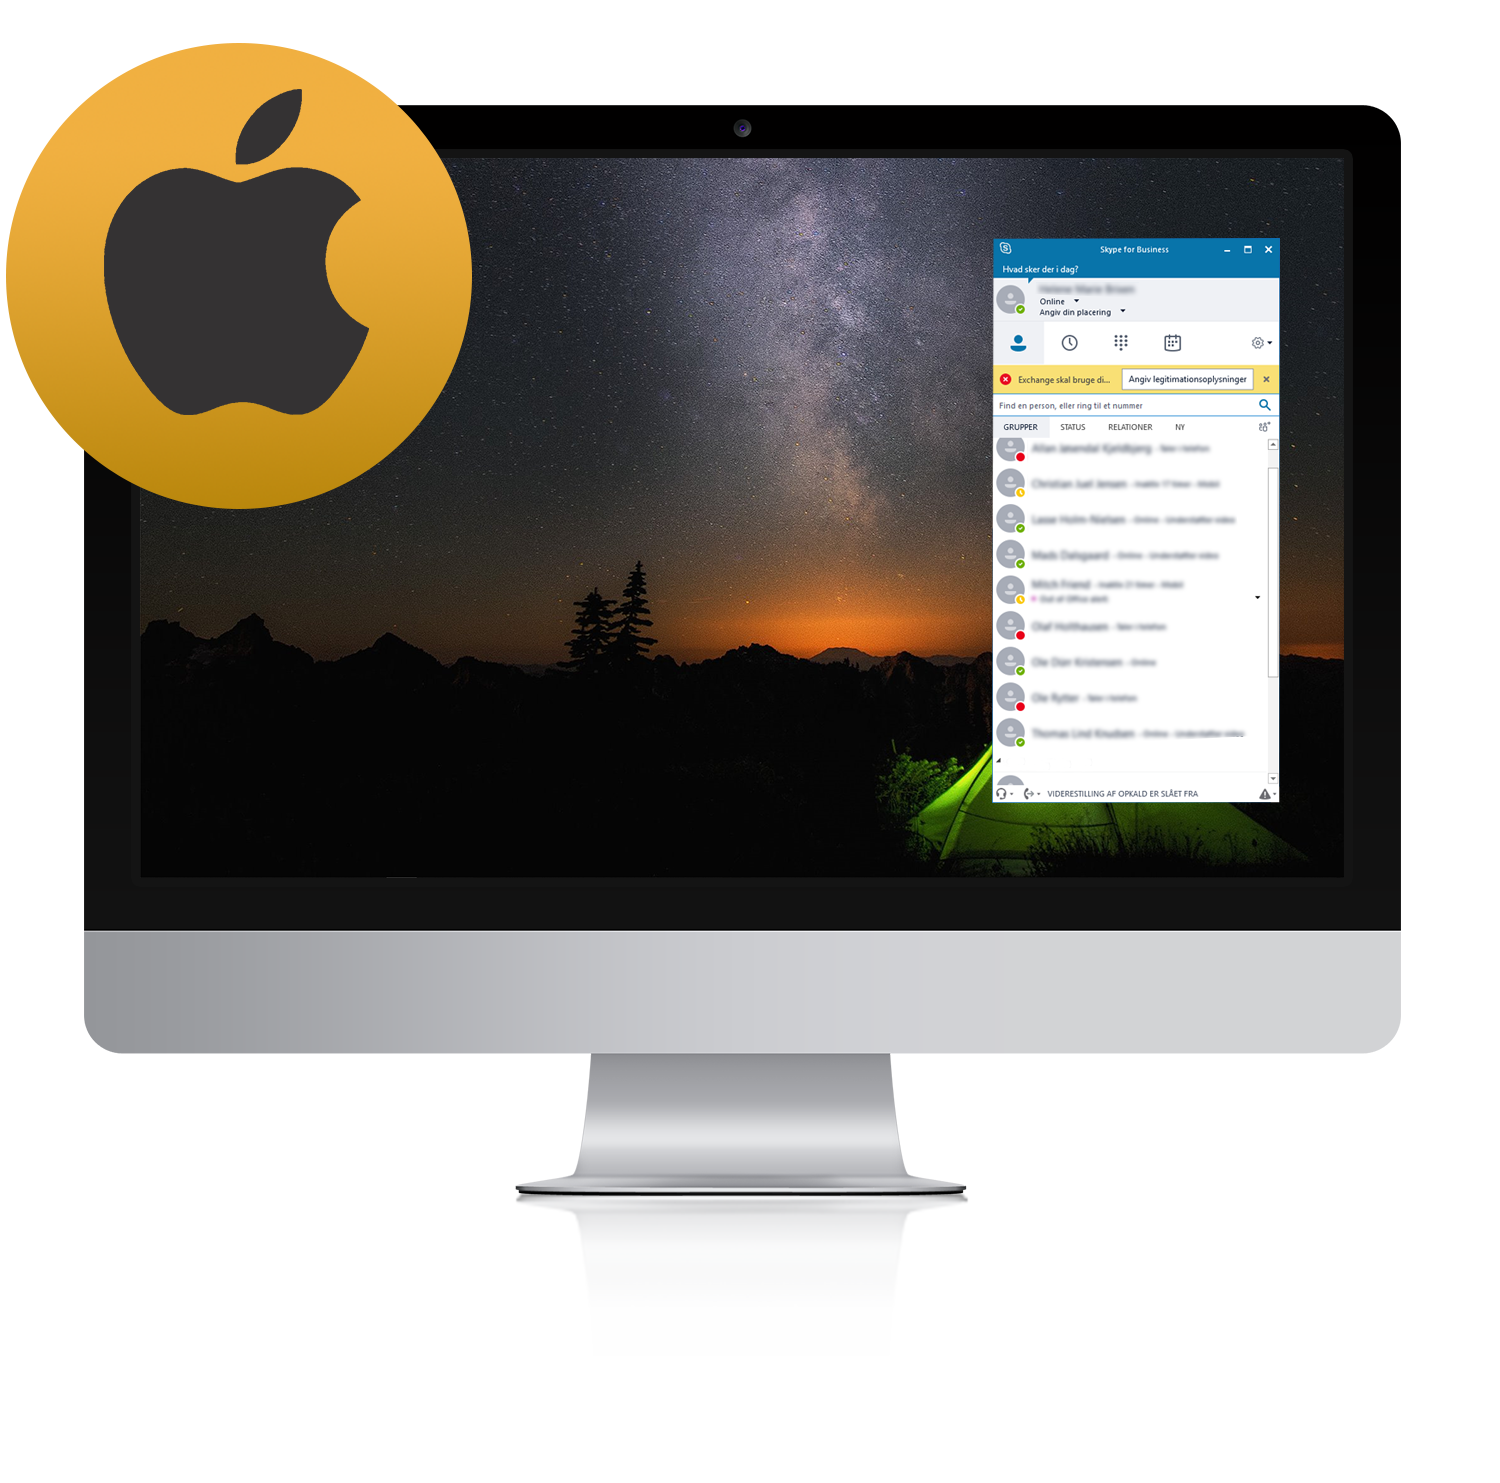 kuando Busylight compatible Skype for Business Mac